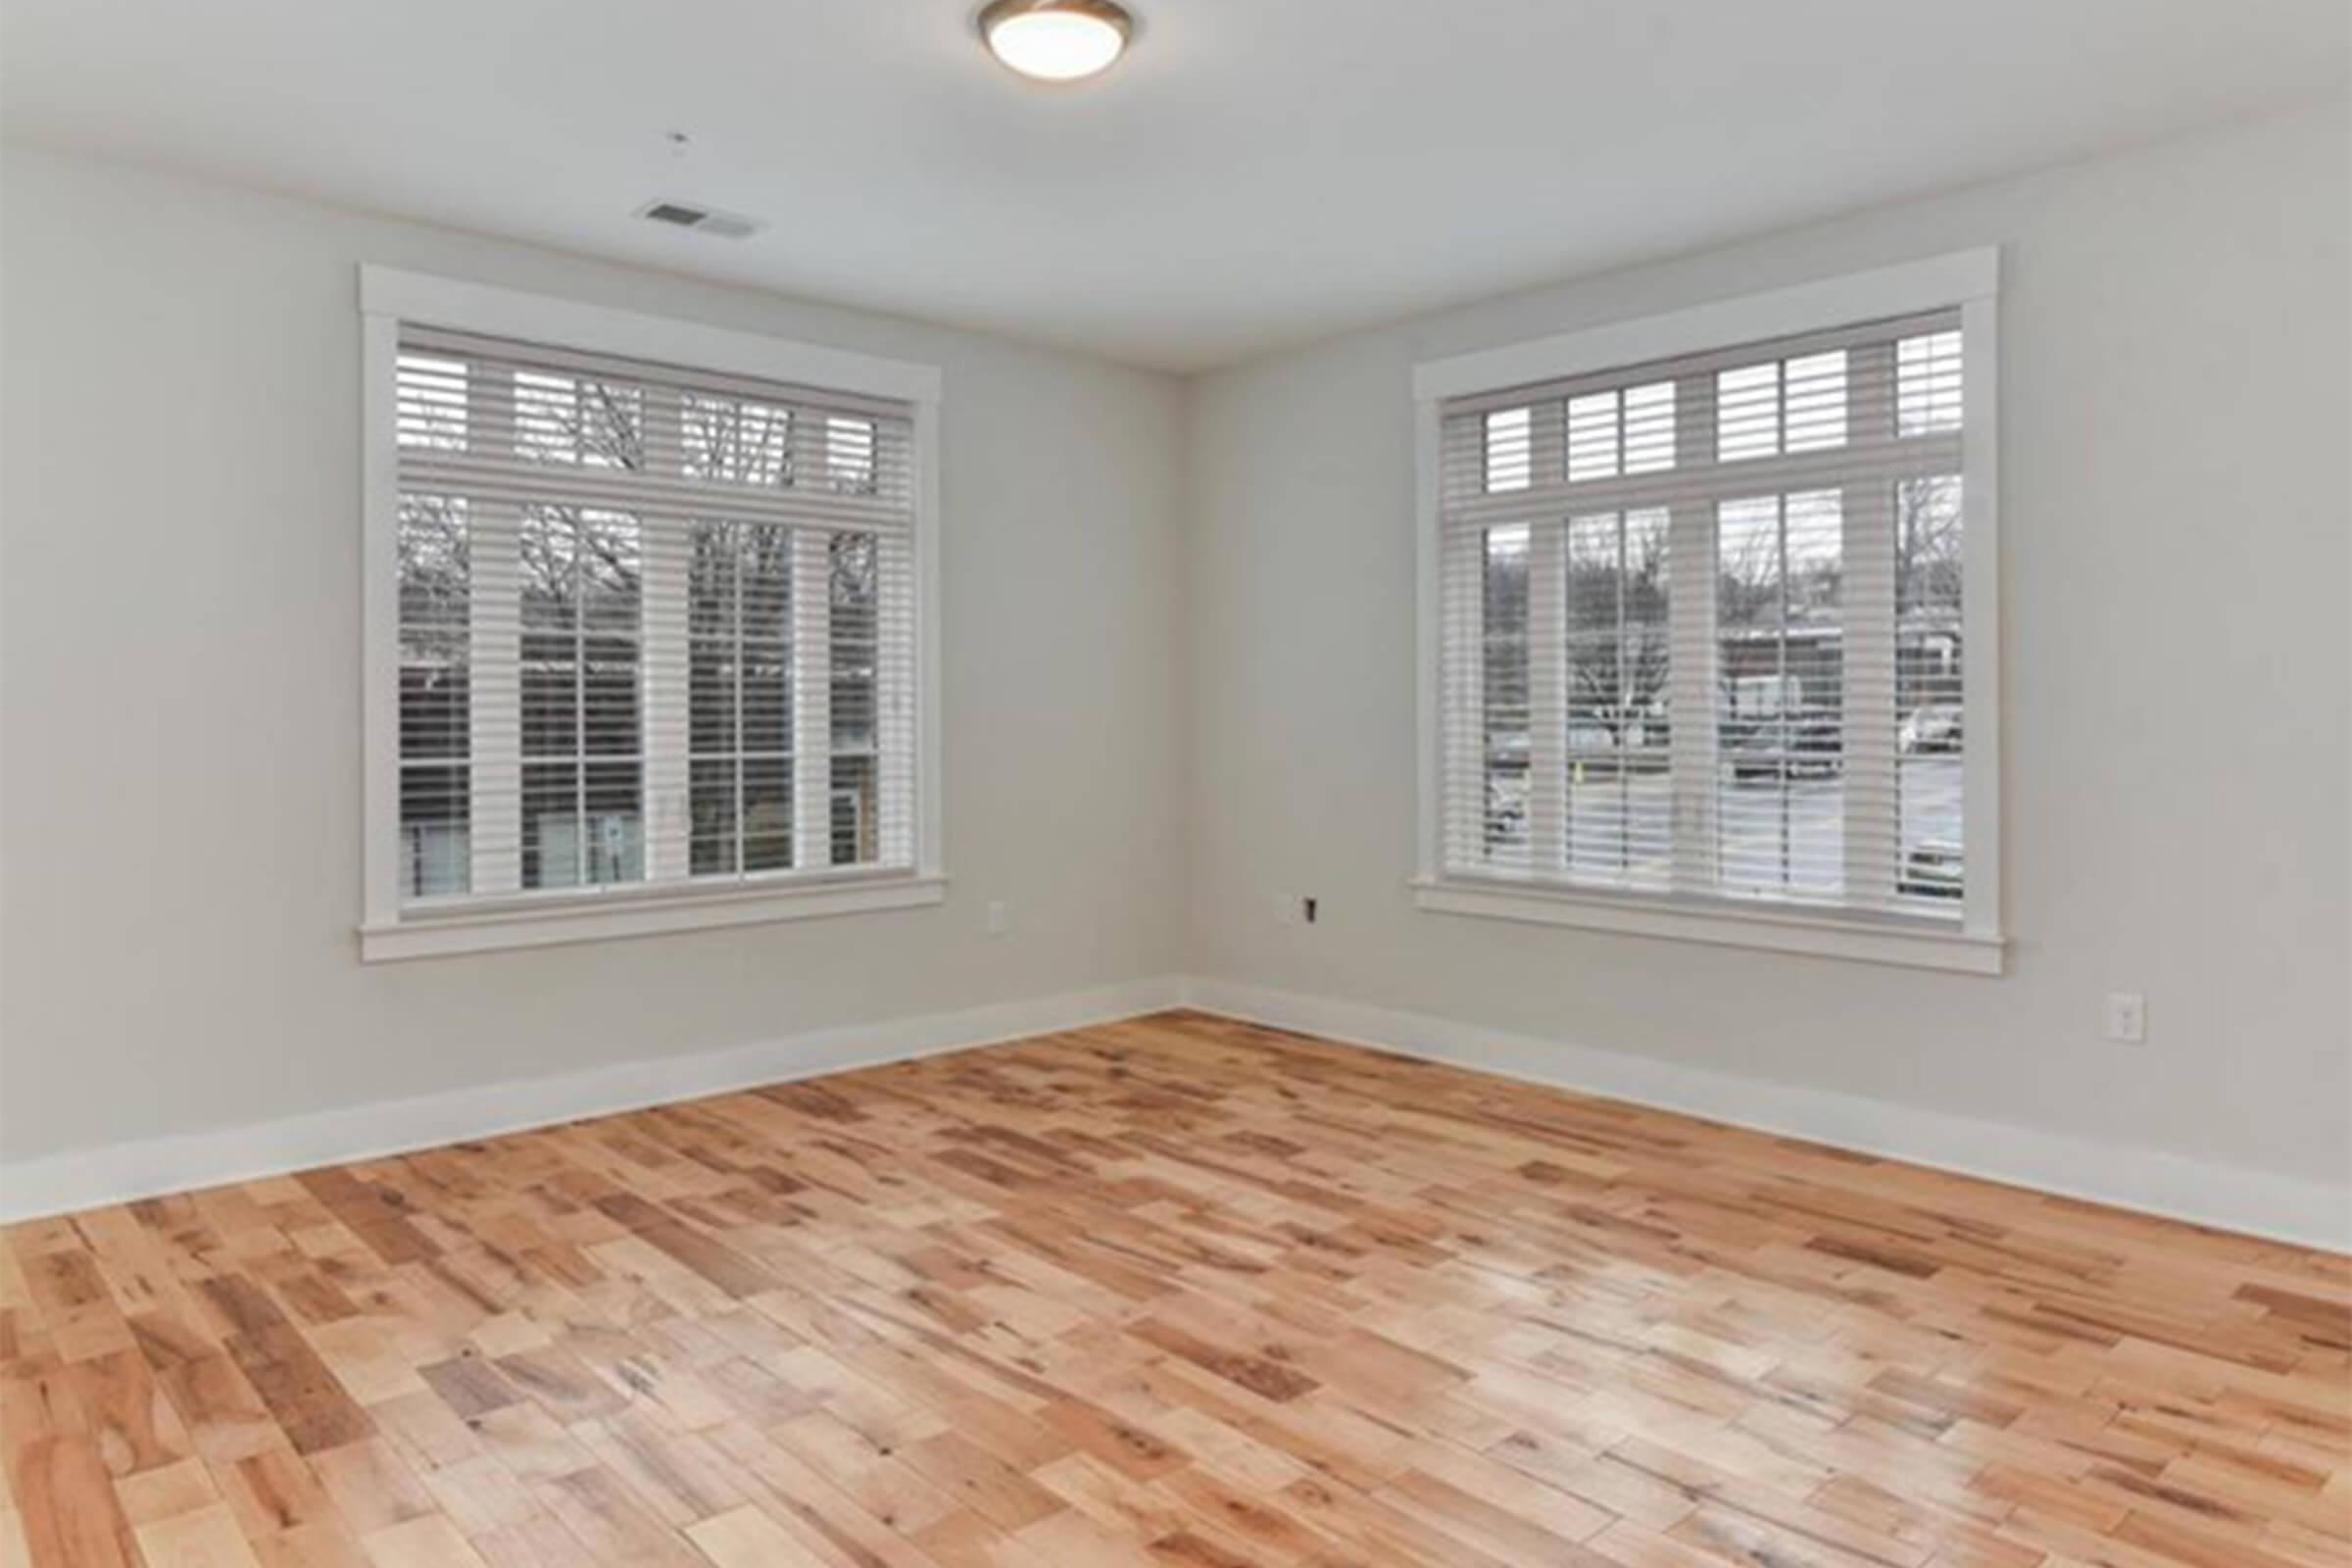 a close up of a hard wood floor next to a window